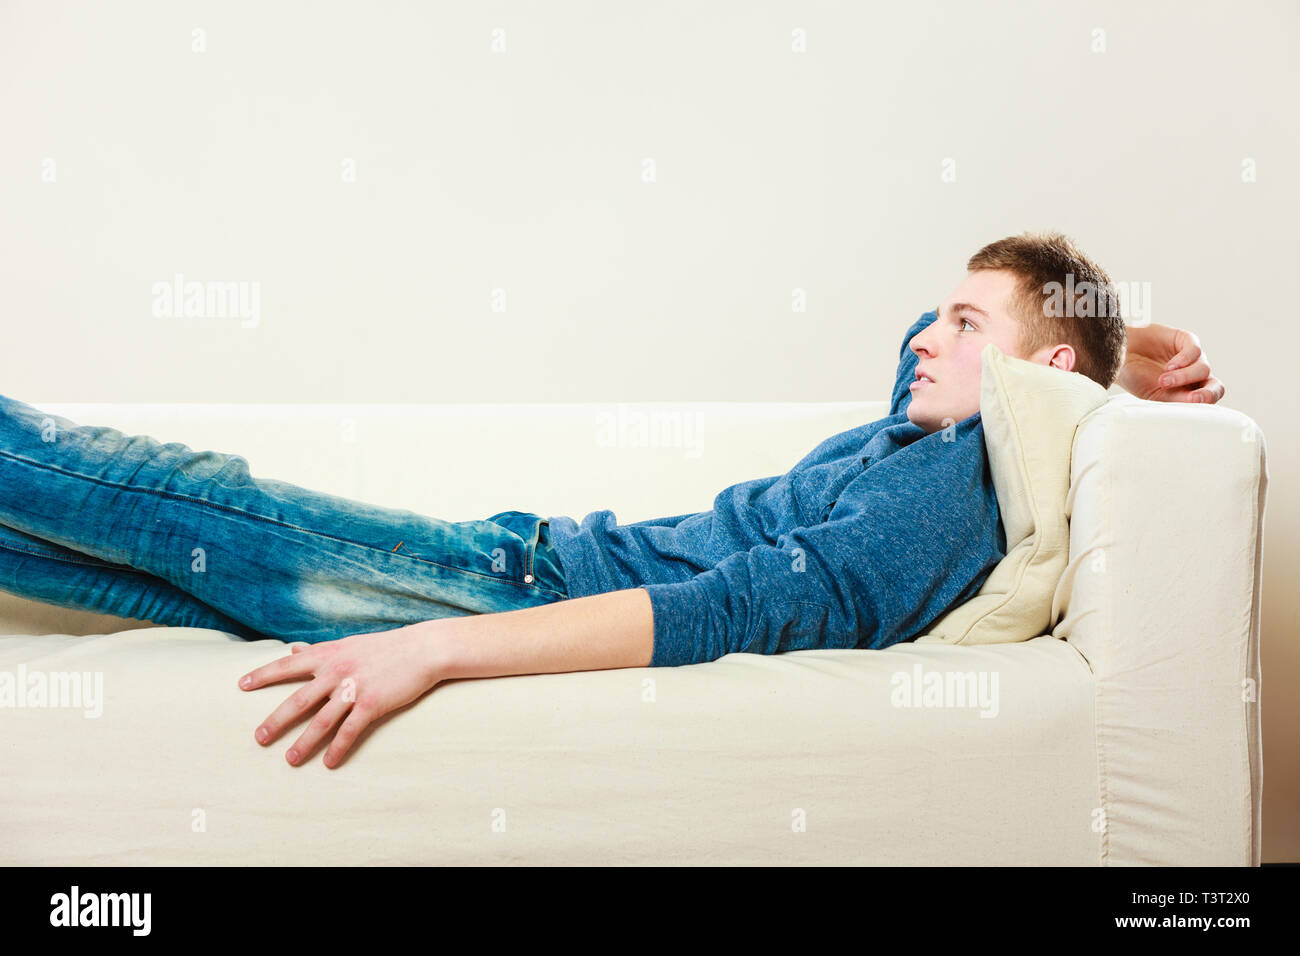 Home, leisure concept. Young handsome pensive man relaxing on couch laying and dreaming - Stock Image